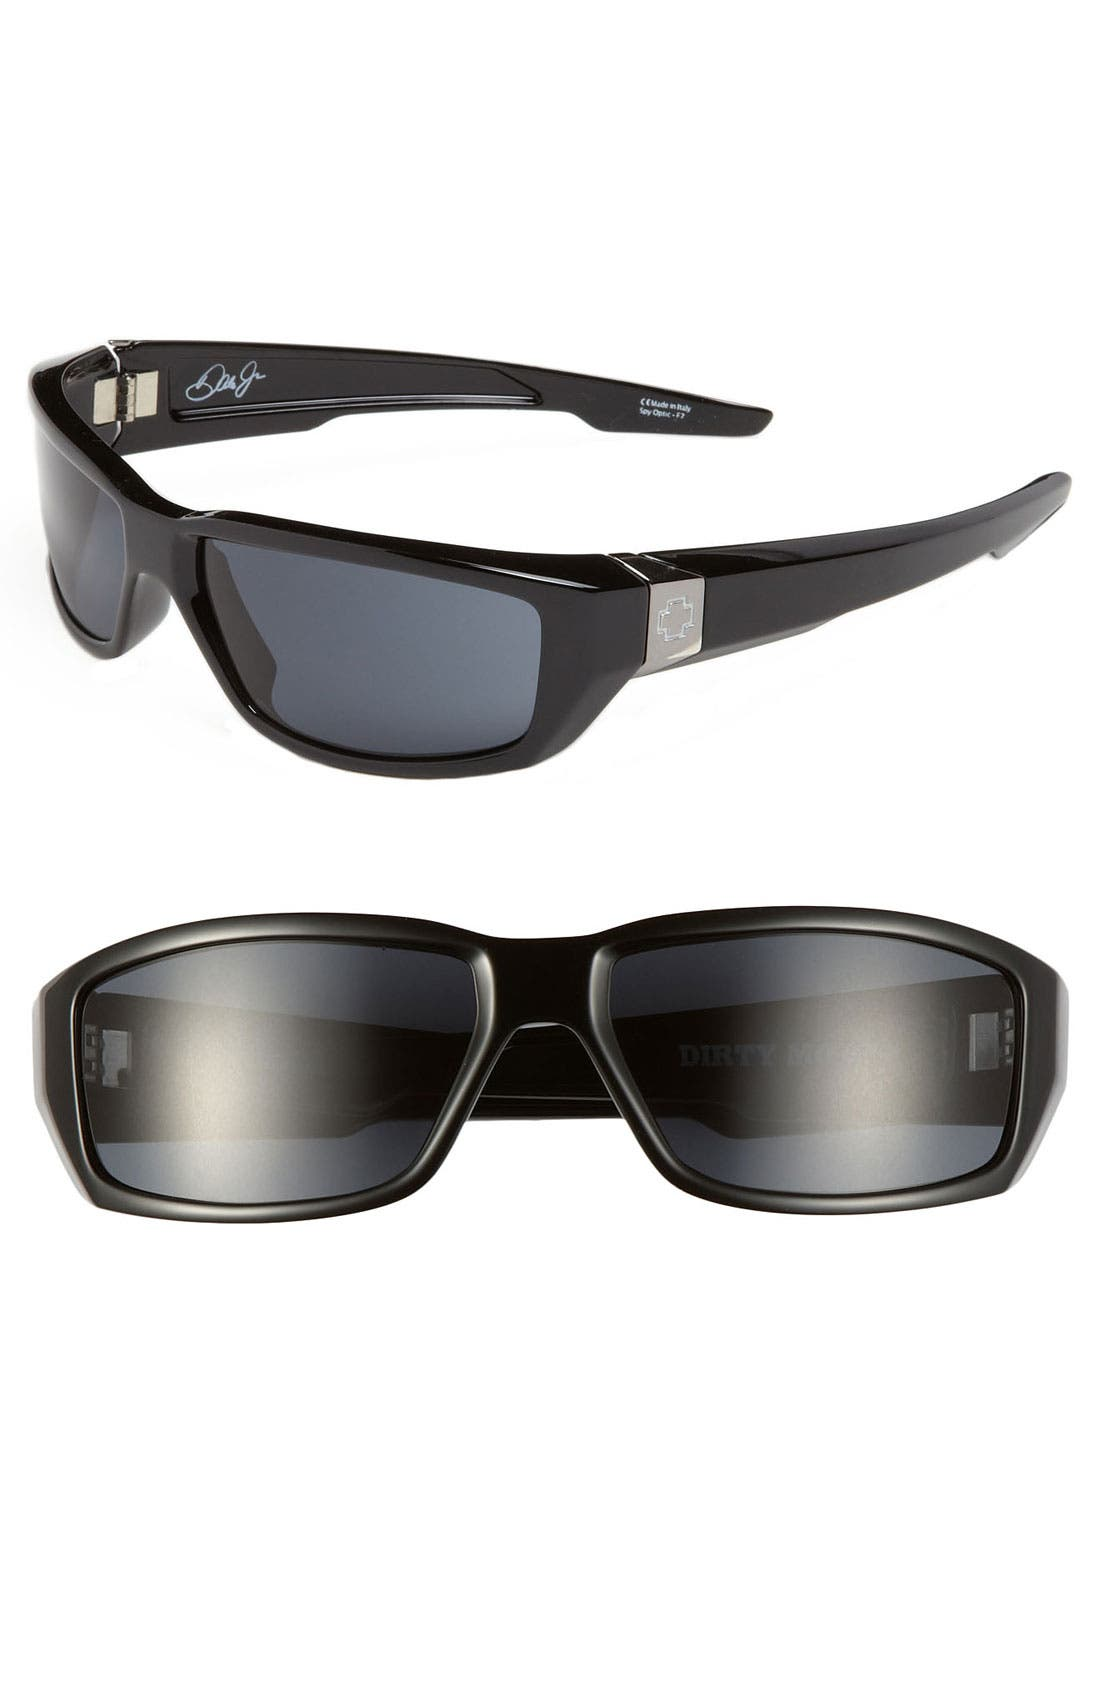 Alternate Image 1 Selected - SPY Optic 'Dale Earnhardt Jr. - Dirty Mo' 59mm Sunglasses